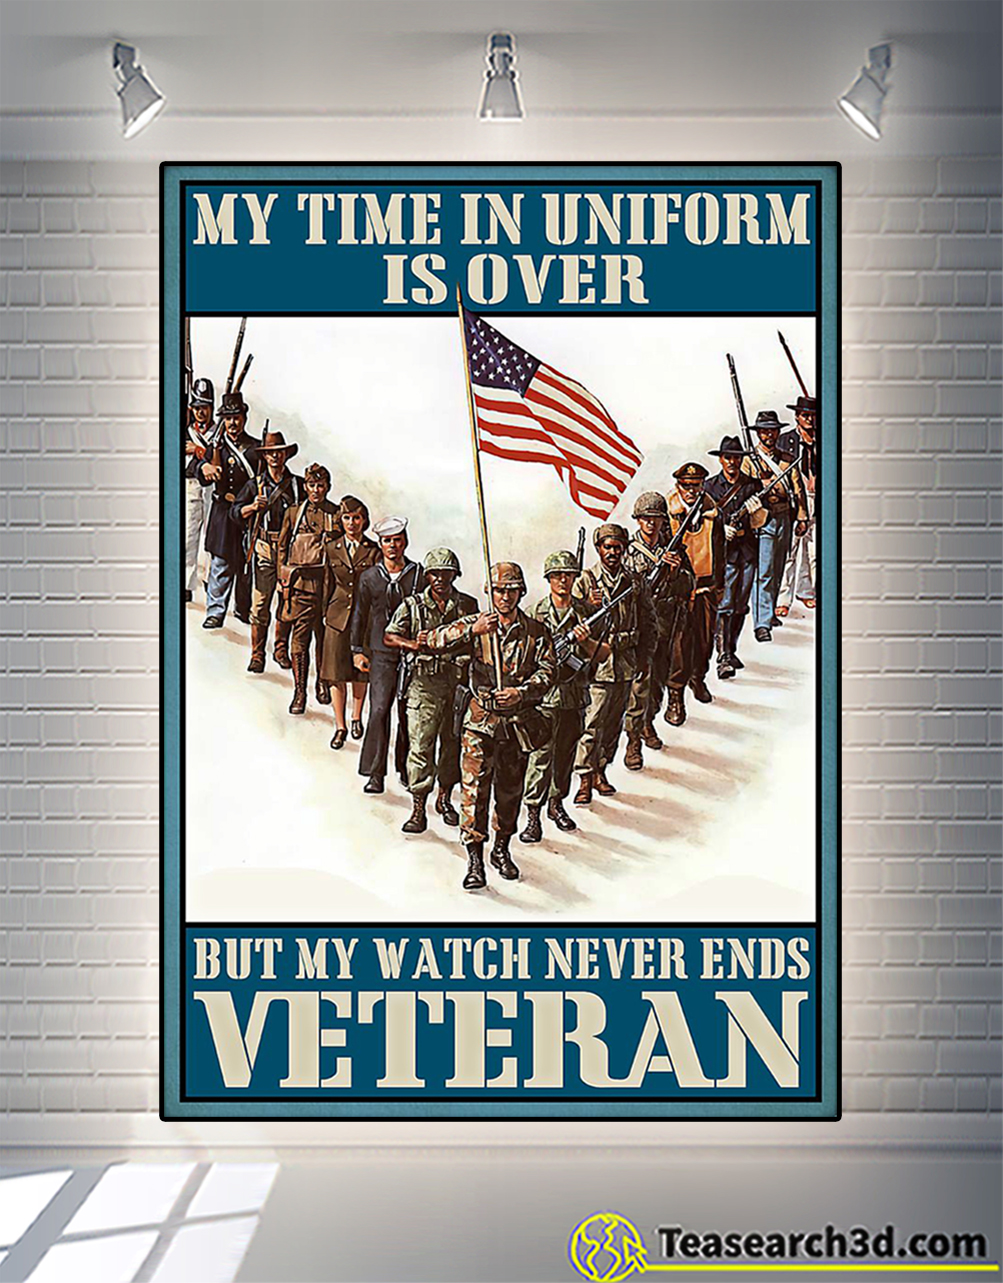 Veteran my time in uniform is over poster